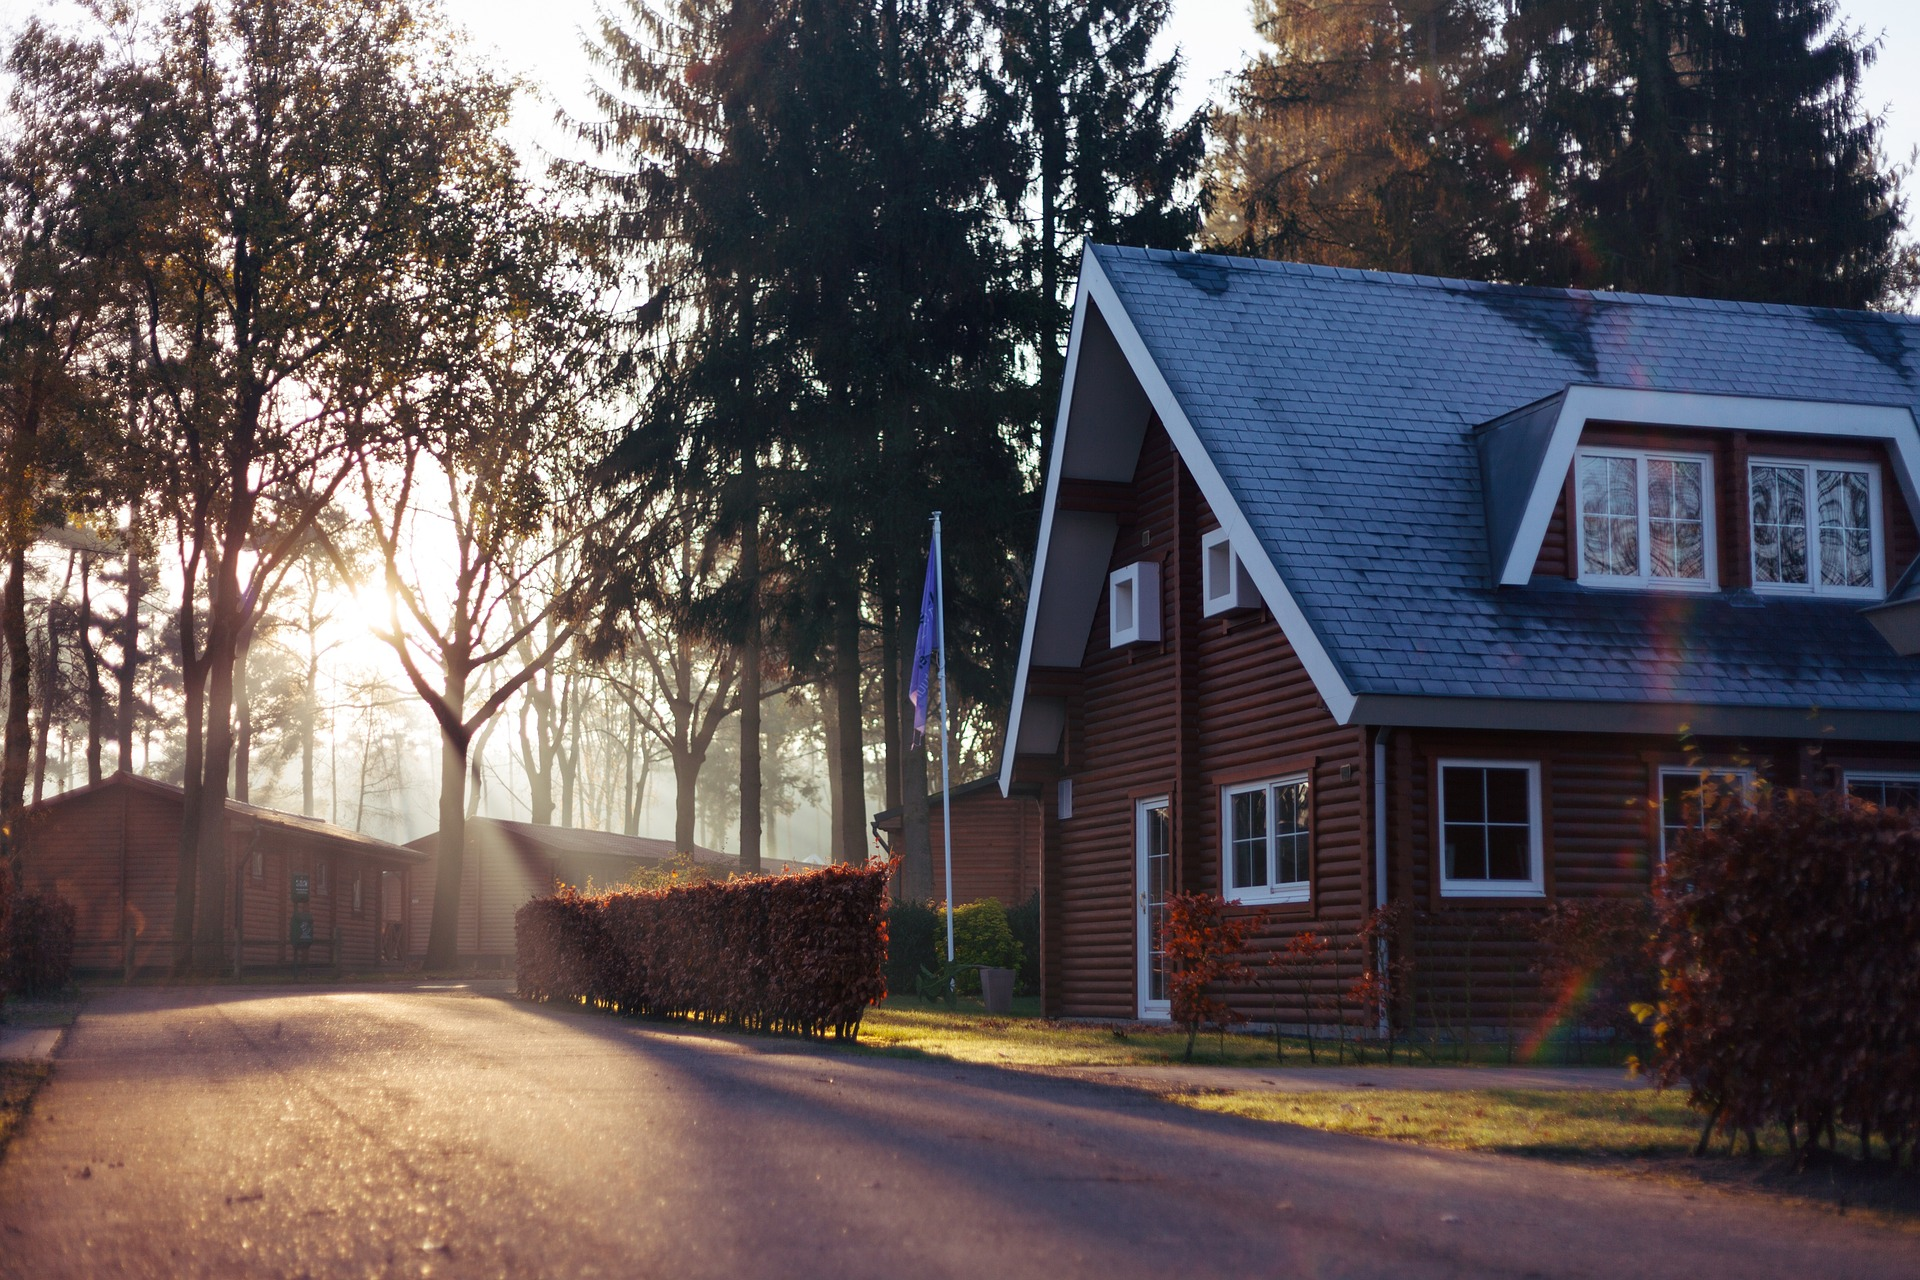 image of house with sunlight and trees